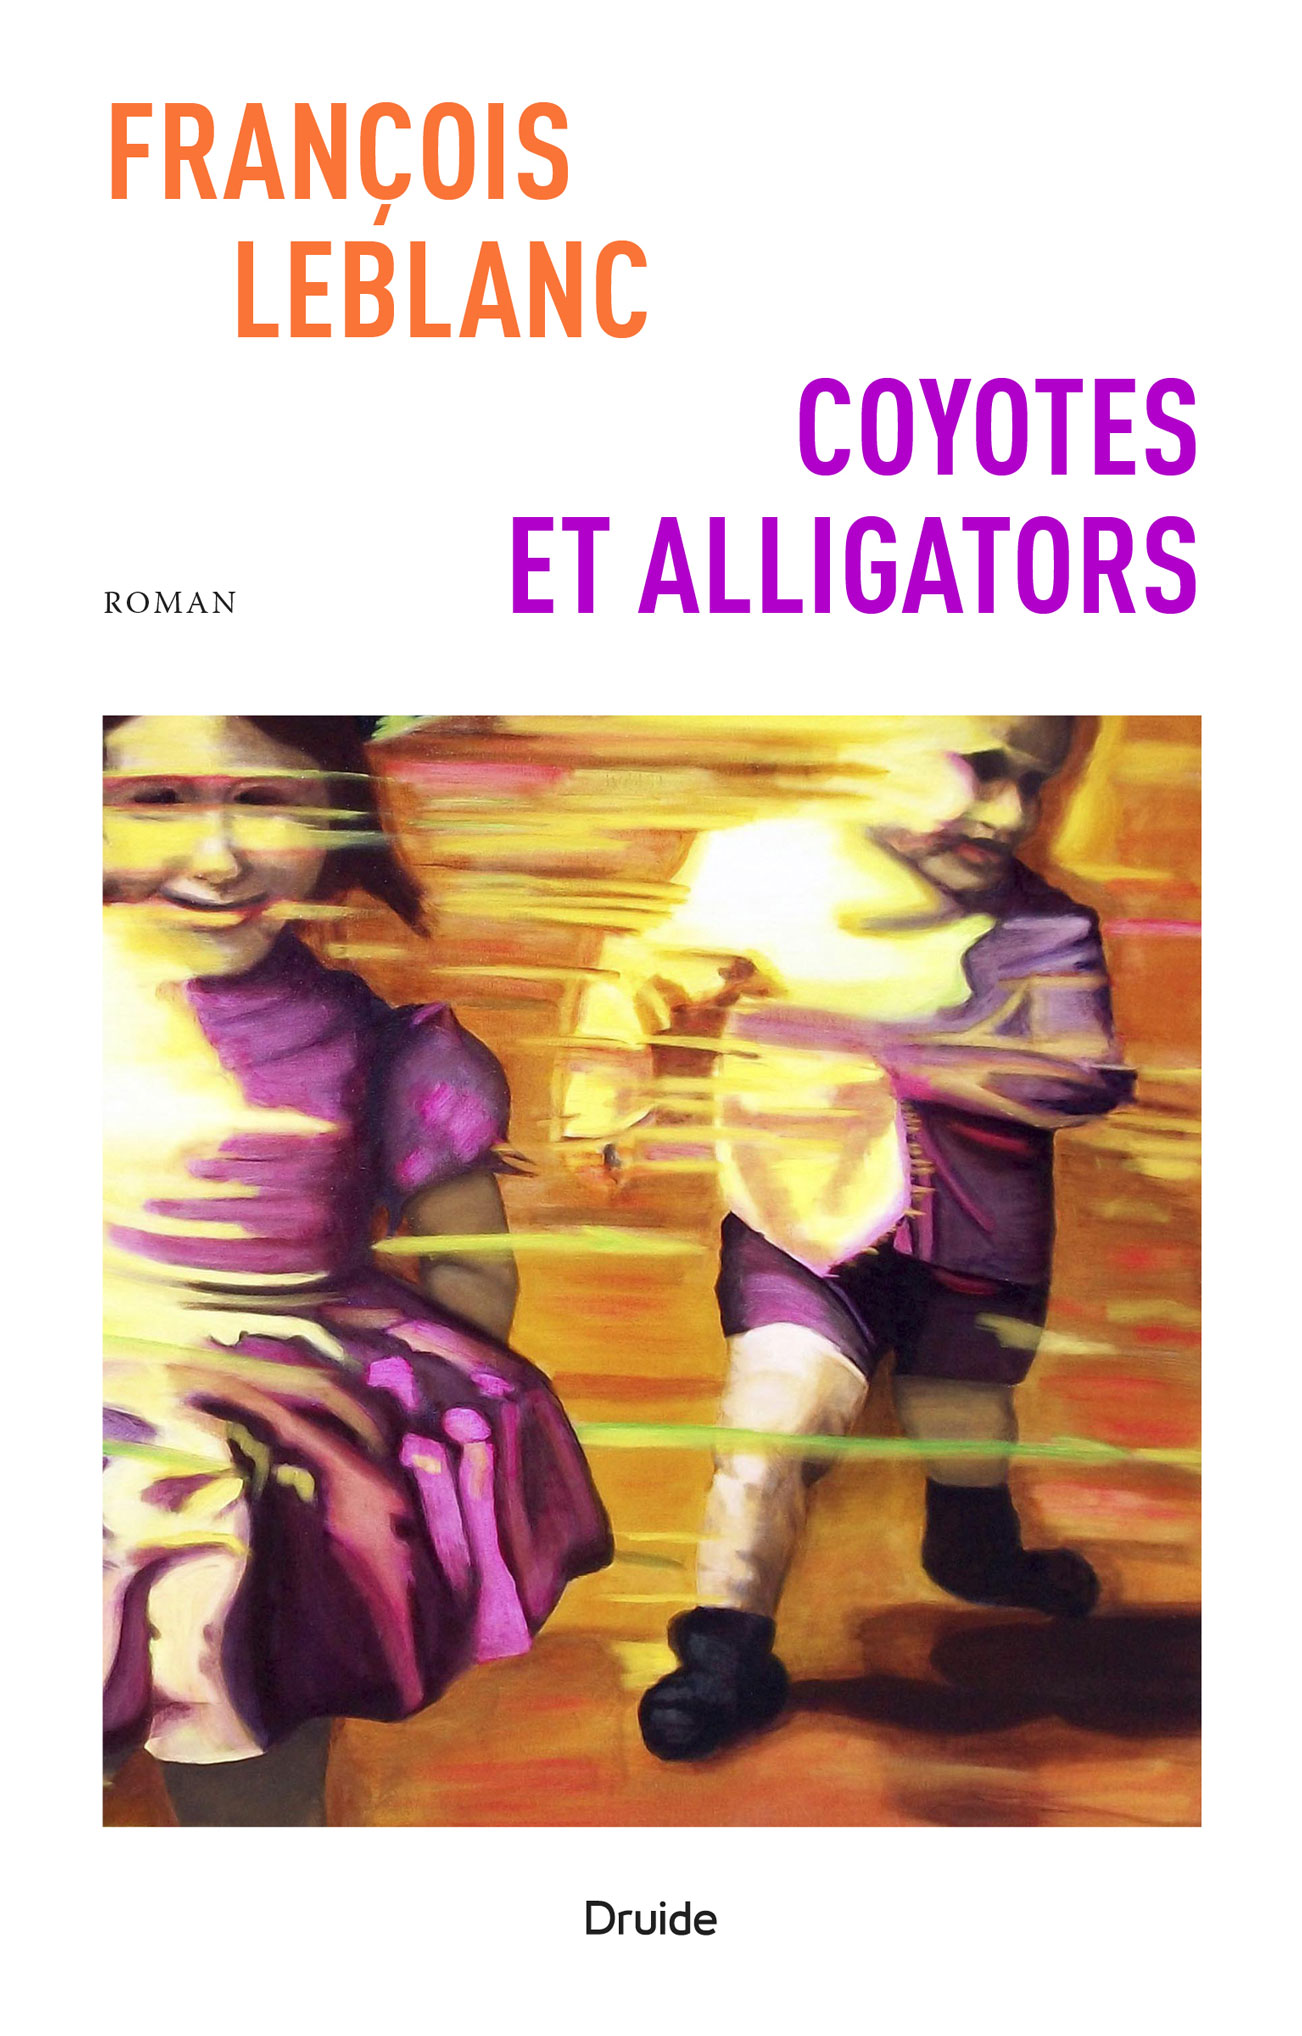 Coyotes et alligators - François Leblanc